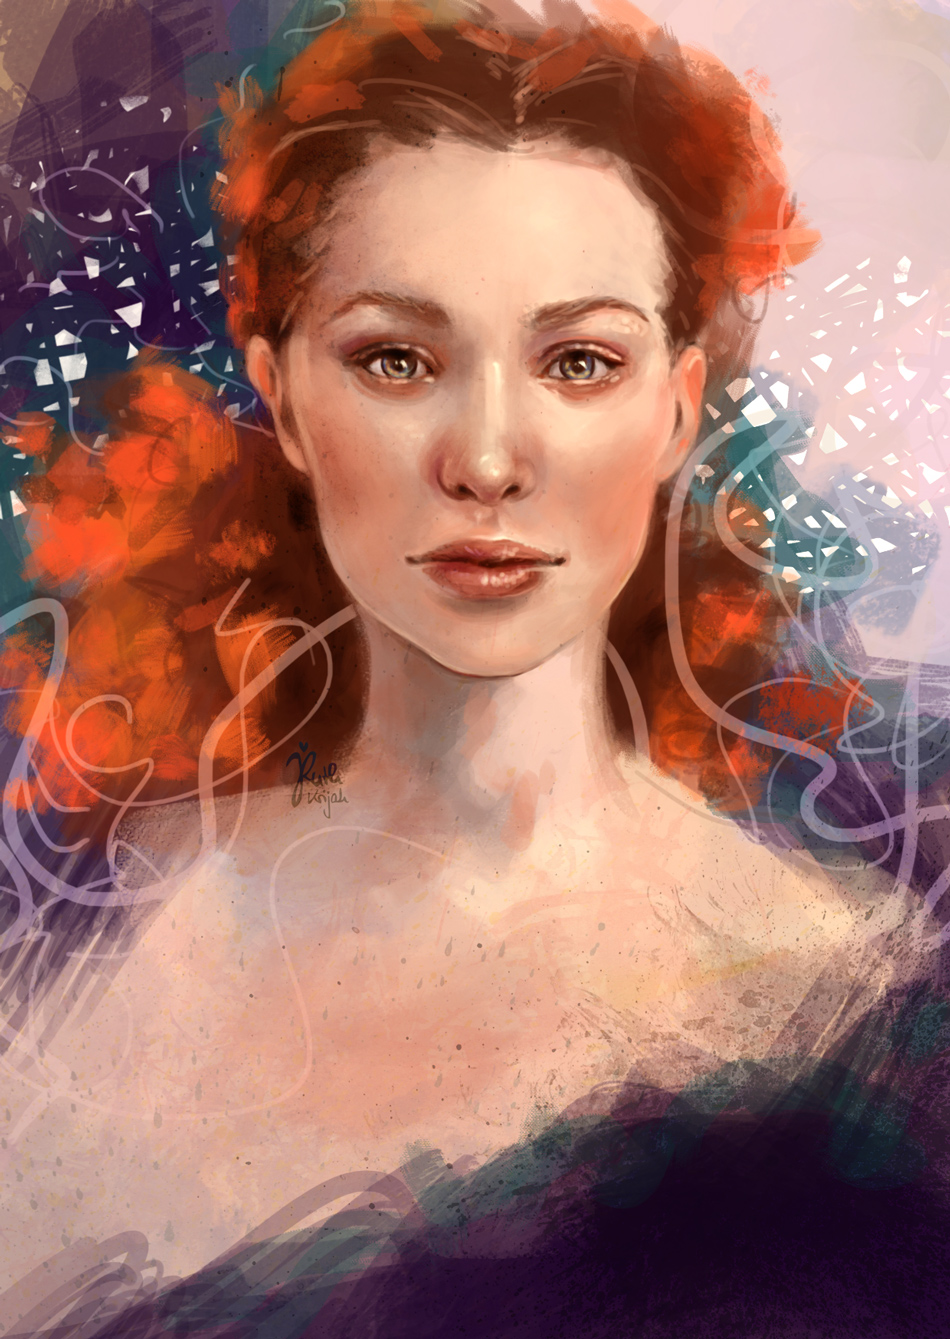 digital painting of white woman with wild orange hair. Inner Woman Portrait. By Artist Ruth Krijah